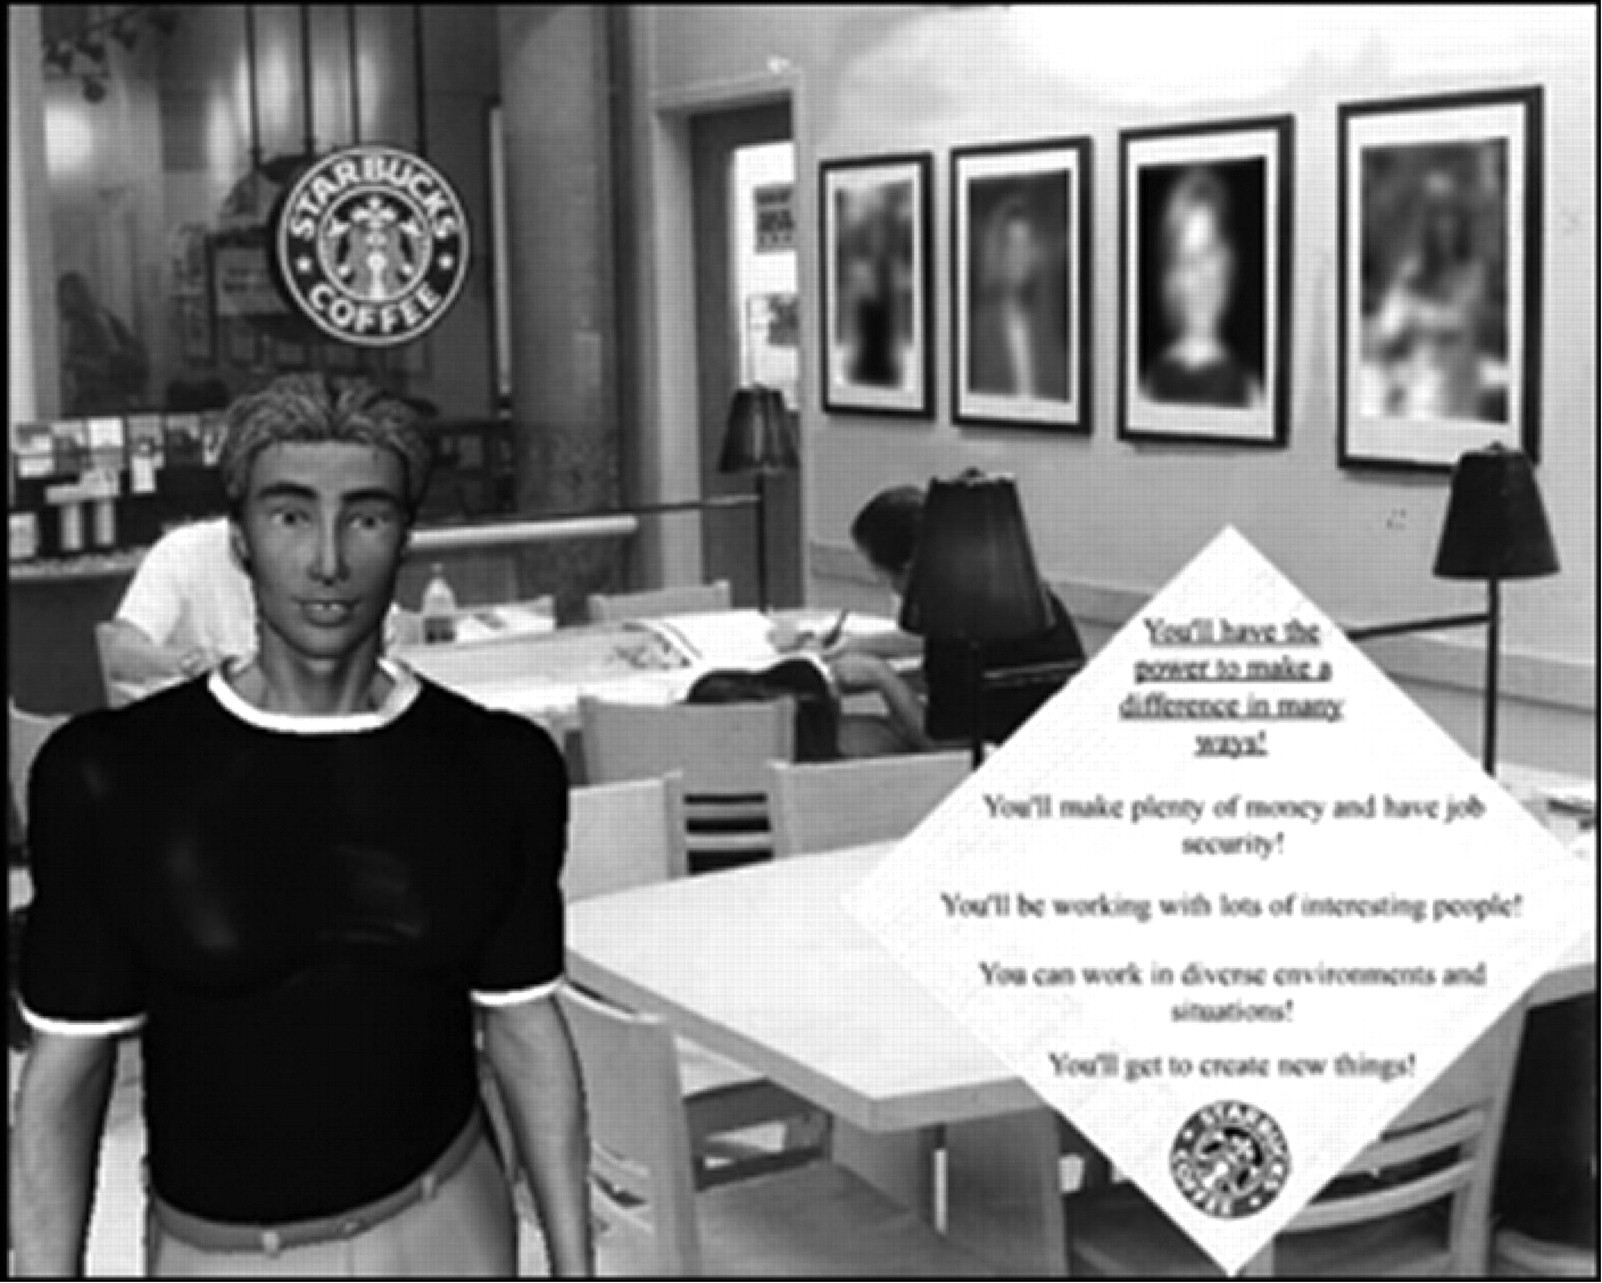 Promoting motivation with virtual agents and avatars: role of visual